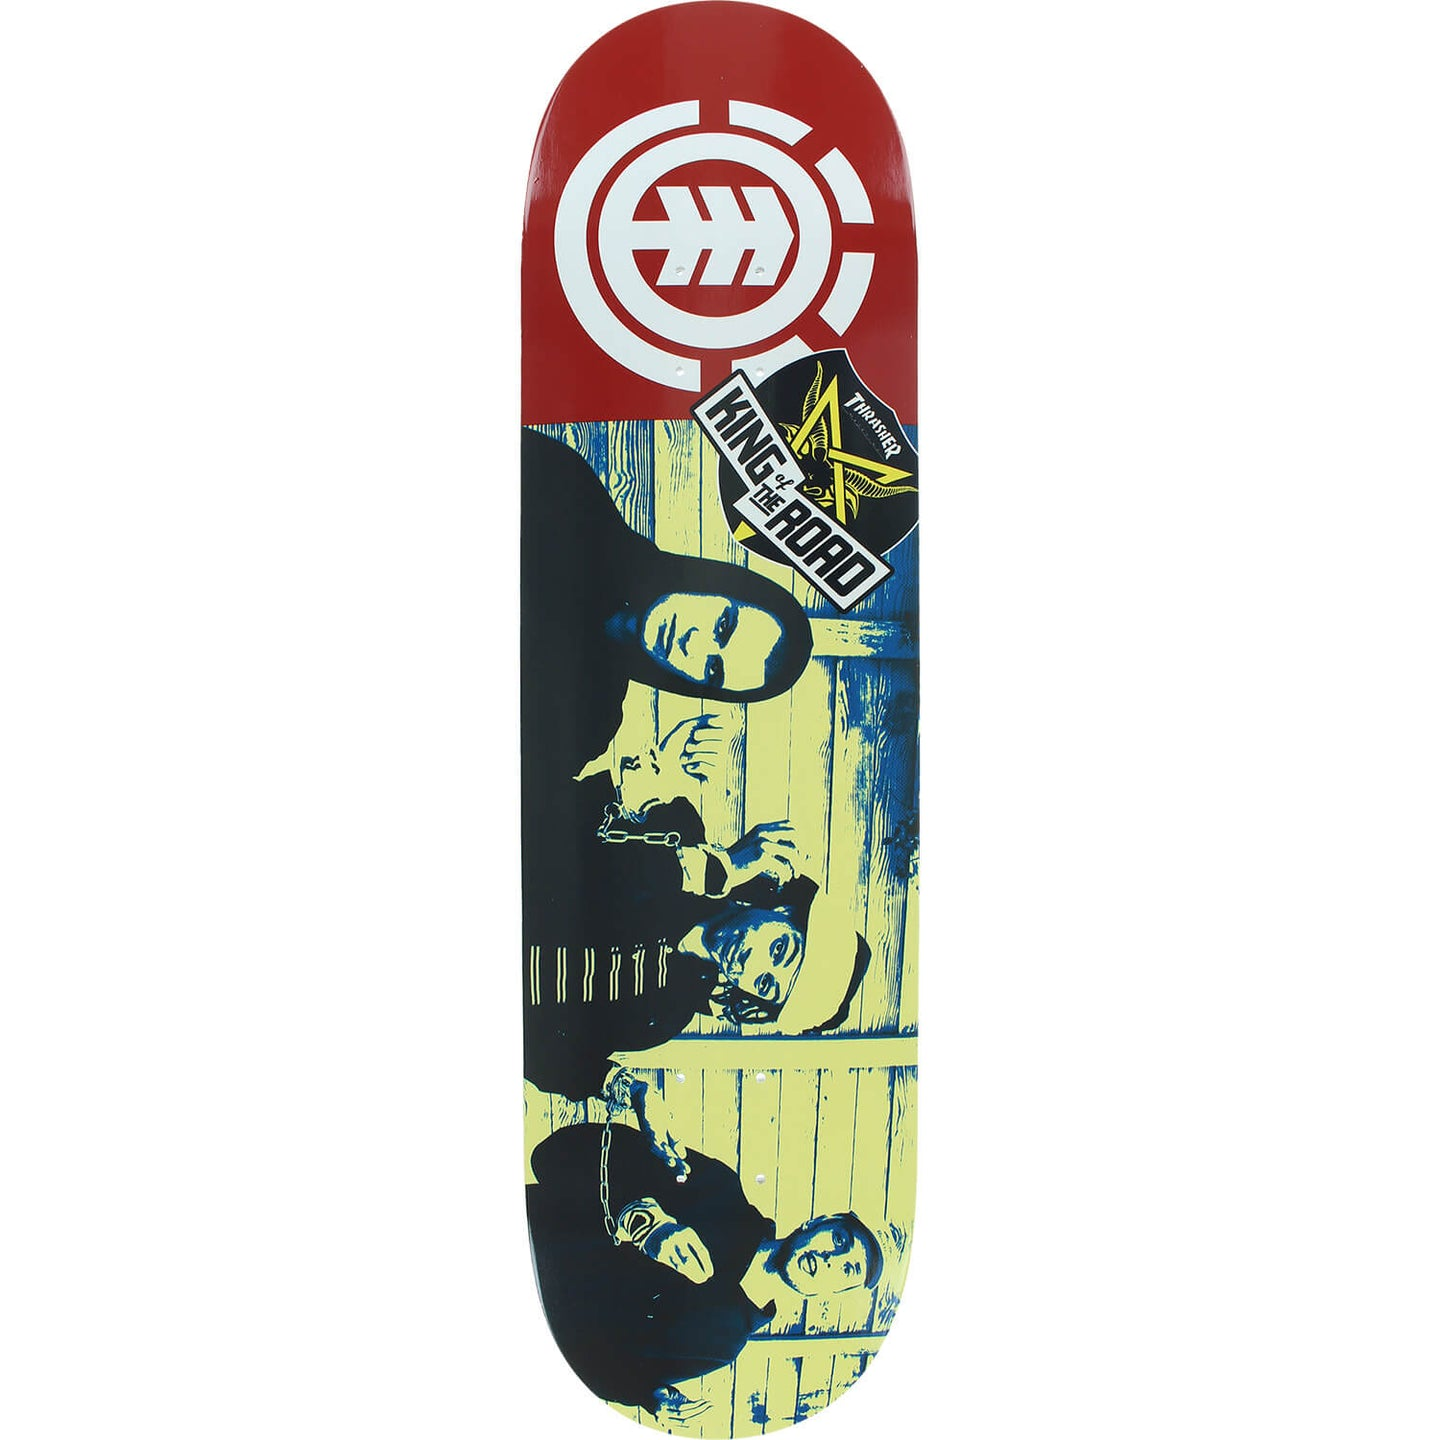 Element Skateboards King of the Road Chain Gang Skateboard Deck 8.2